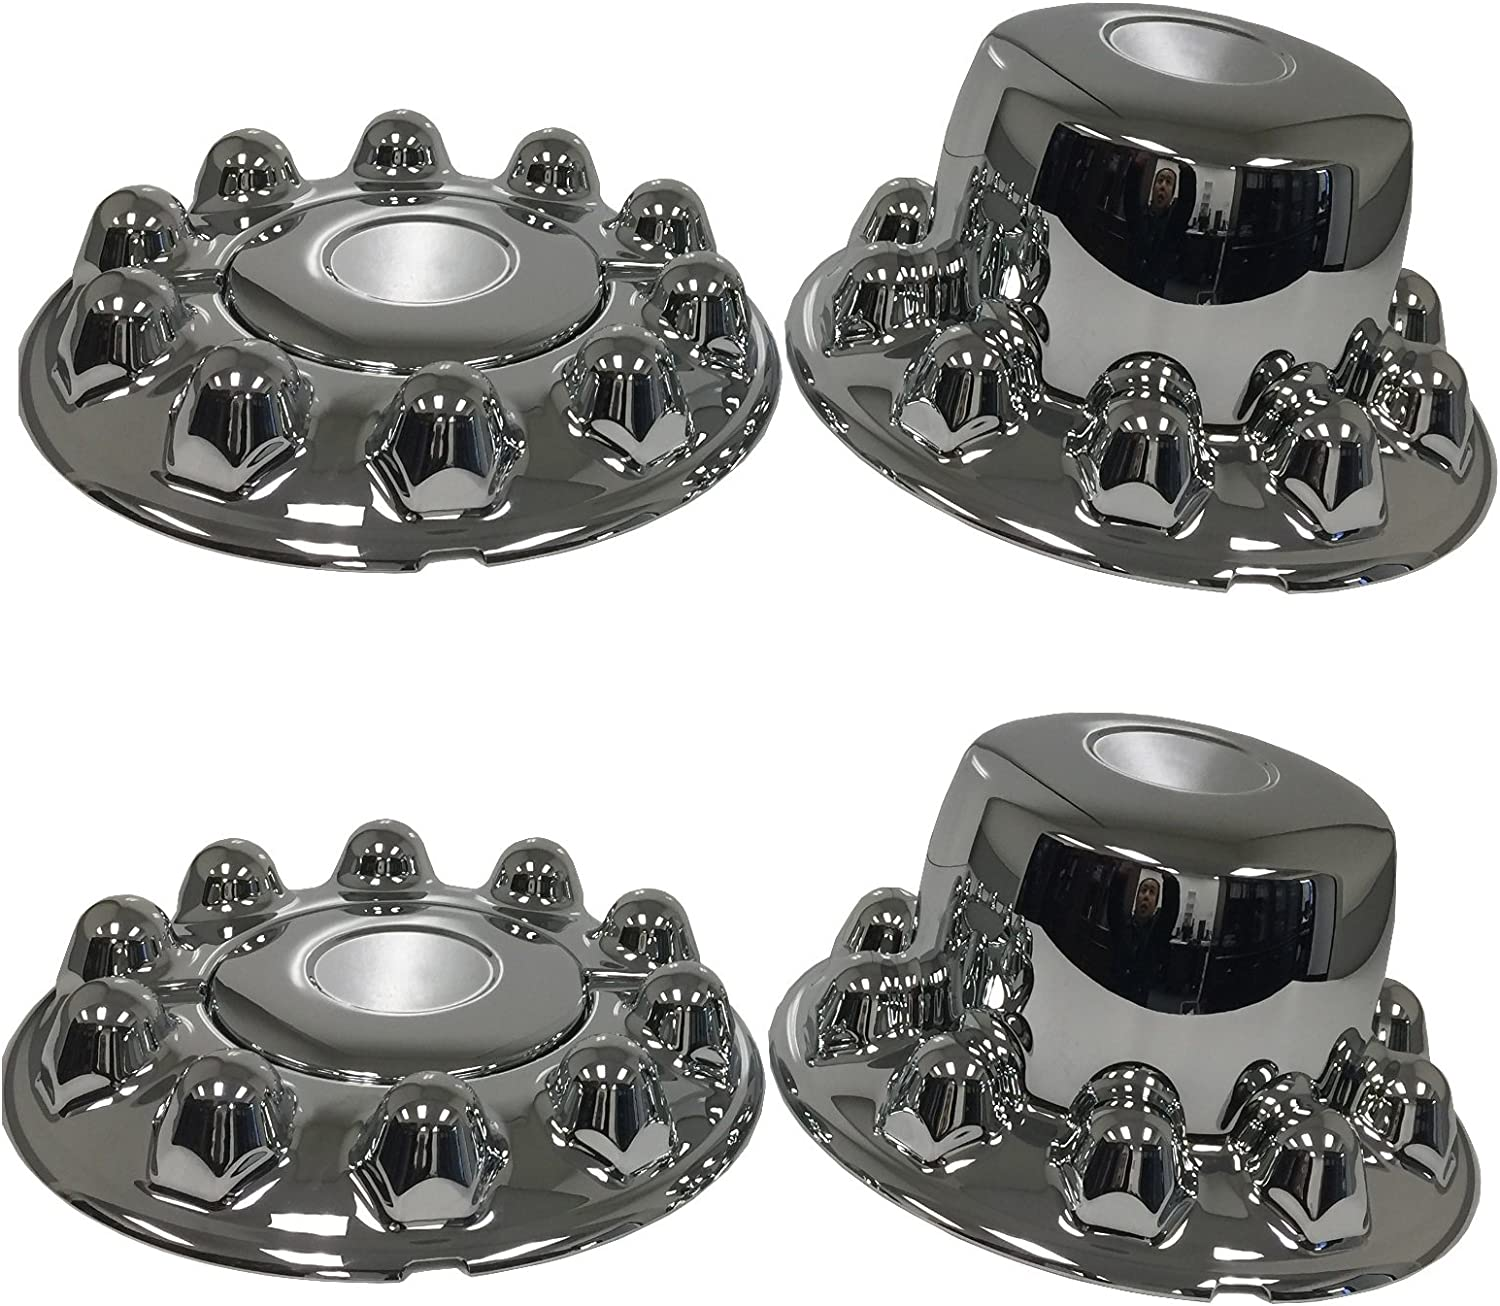 ZXLY ONE Set of 4pcs Chrome ABS Axle Covers 10 Holes for 2005-2016 Ford F450//550